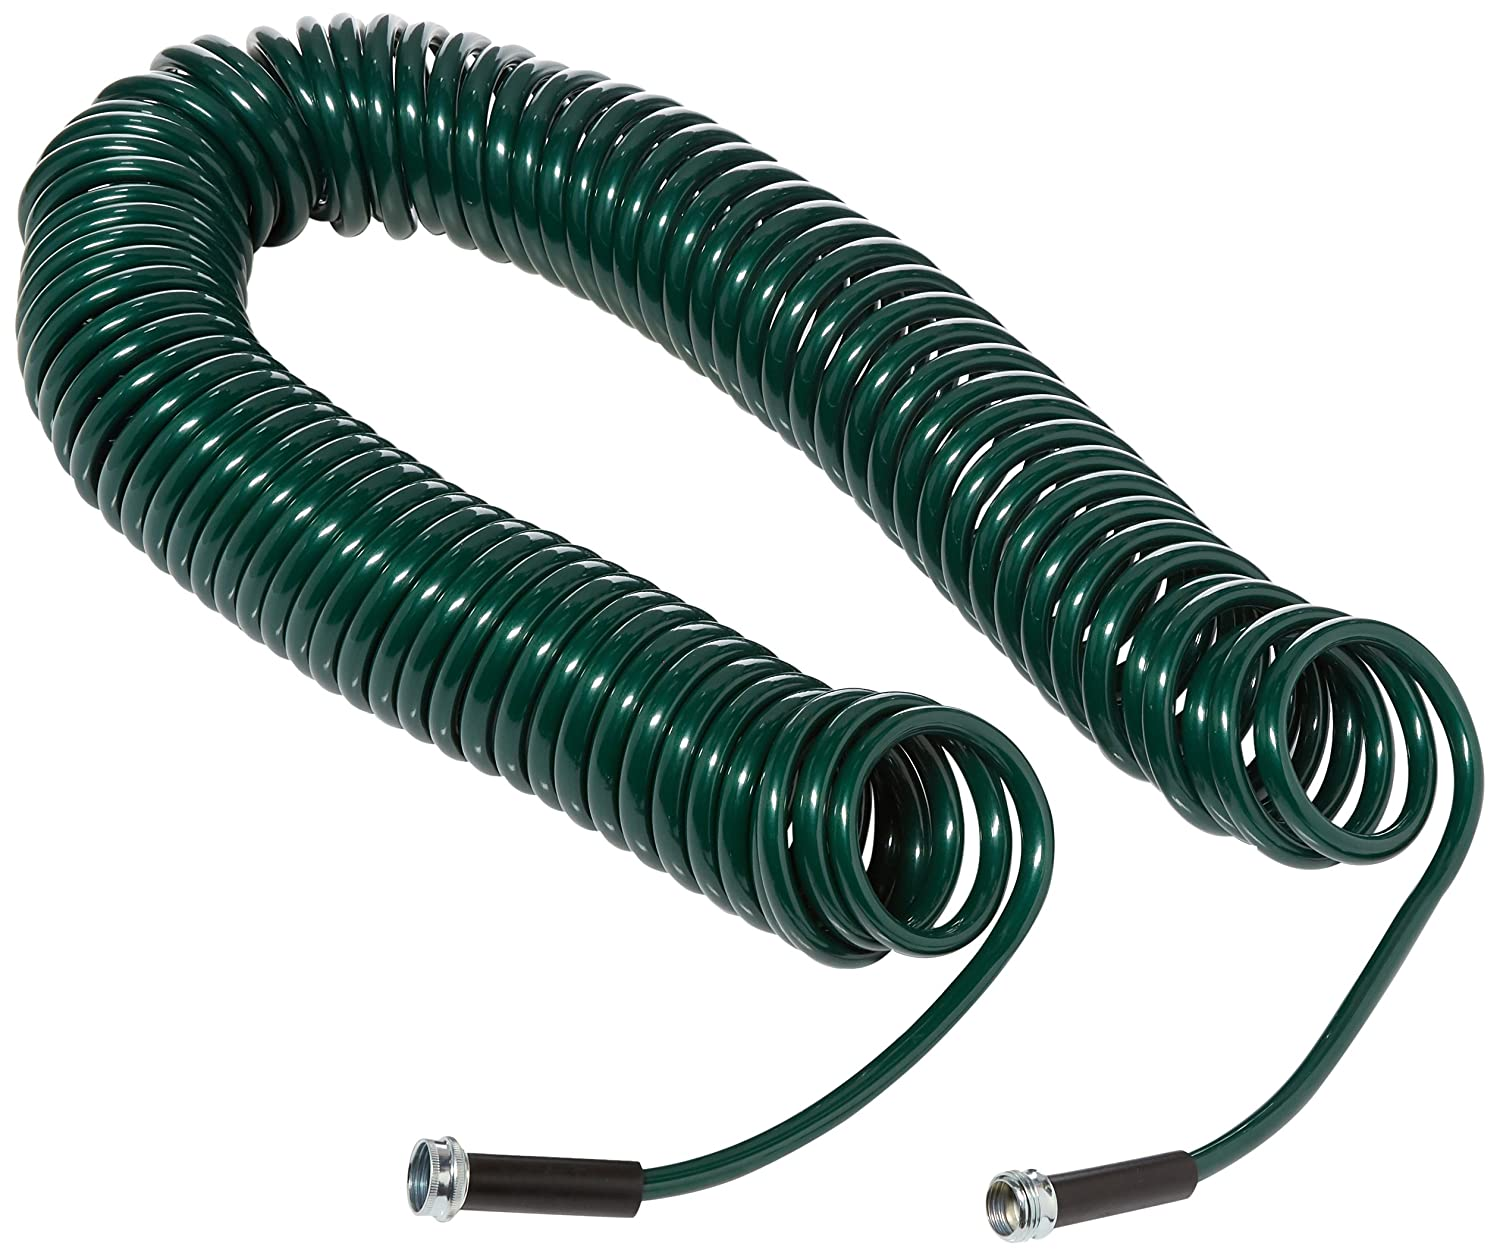 Plastair SpringHose PUW675B94H-AMZ Light Polyurethane Lead Free Drinking Water Safe Recoil Garden Hose, Green, 3/8-Inch by 75-Foot